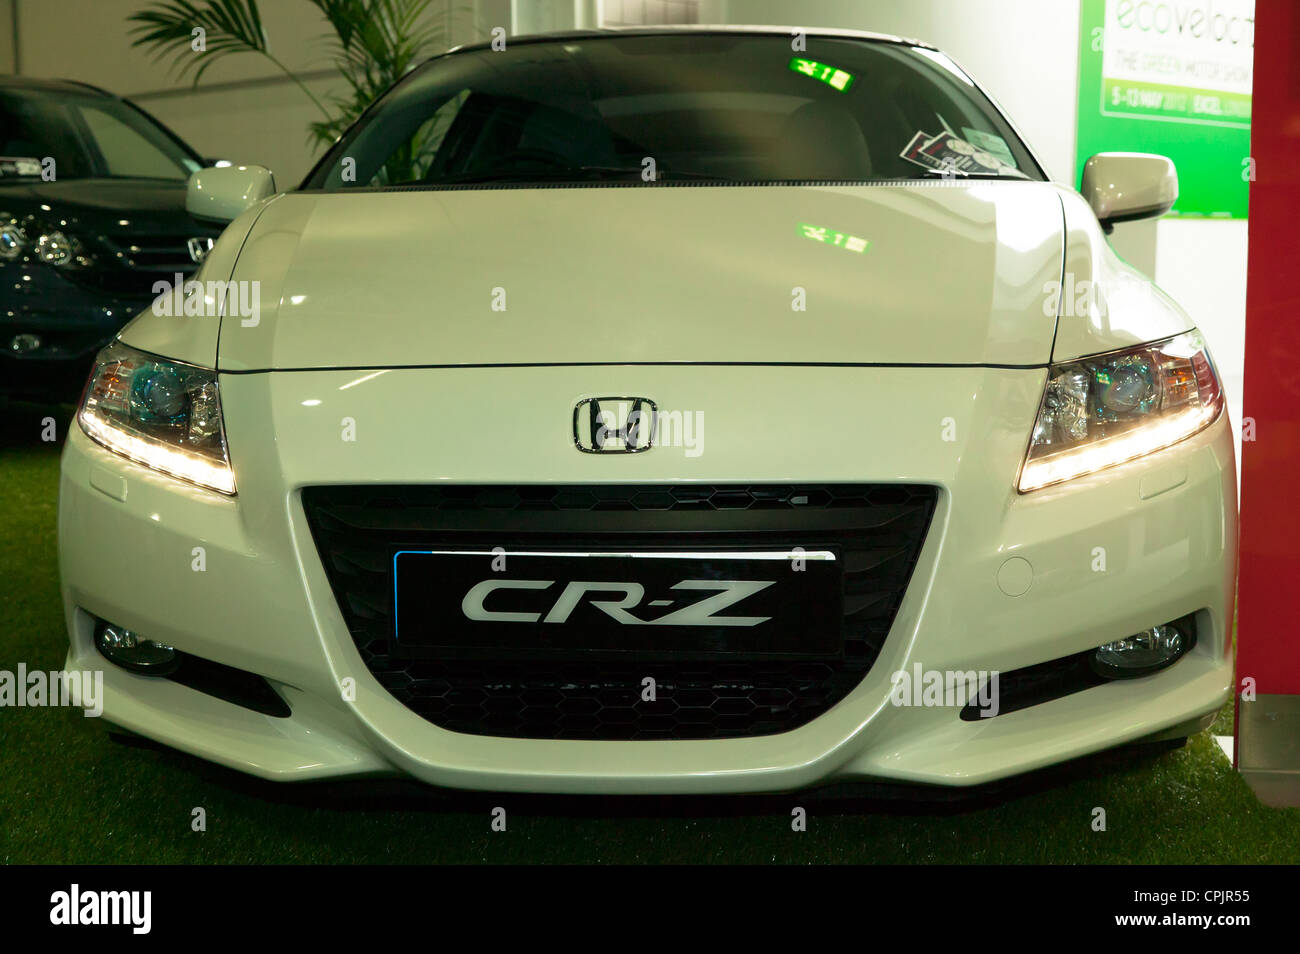 Front view of a Honda CR-Z, on static display at ecovelocity, 2012 - Stock Image